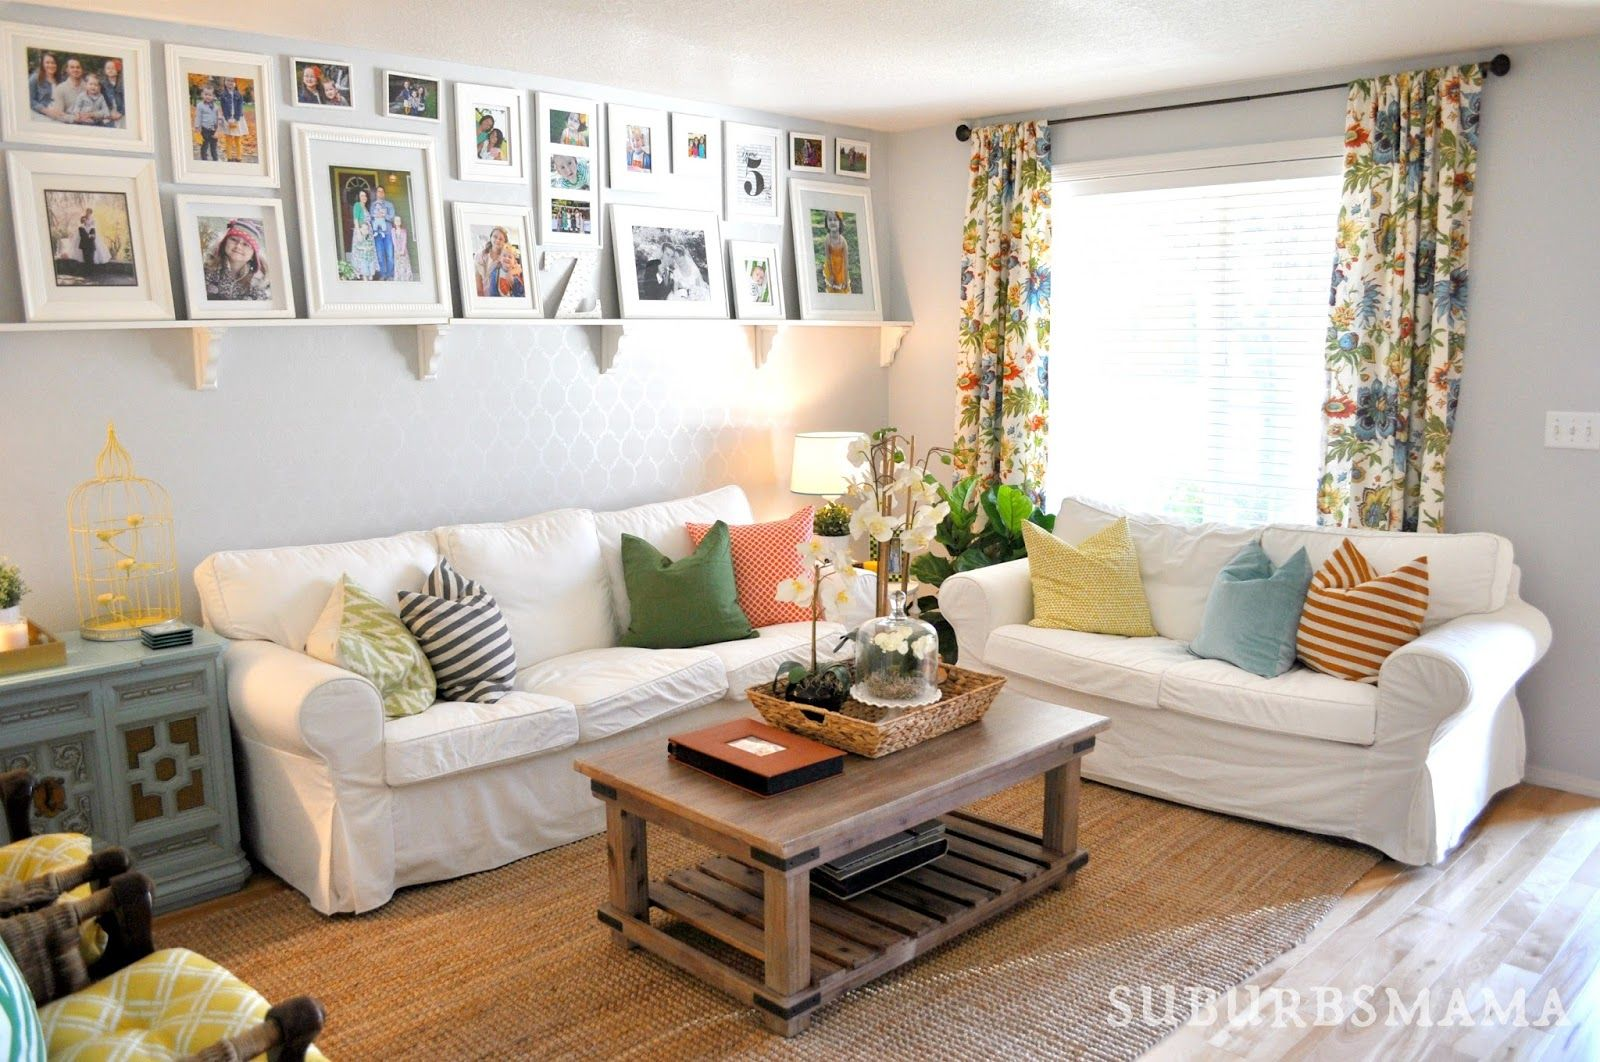 Suburbs Mama: Living Room Updates | Ektorp Living Room, Living Room White, Cheap Living Room Furniture